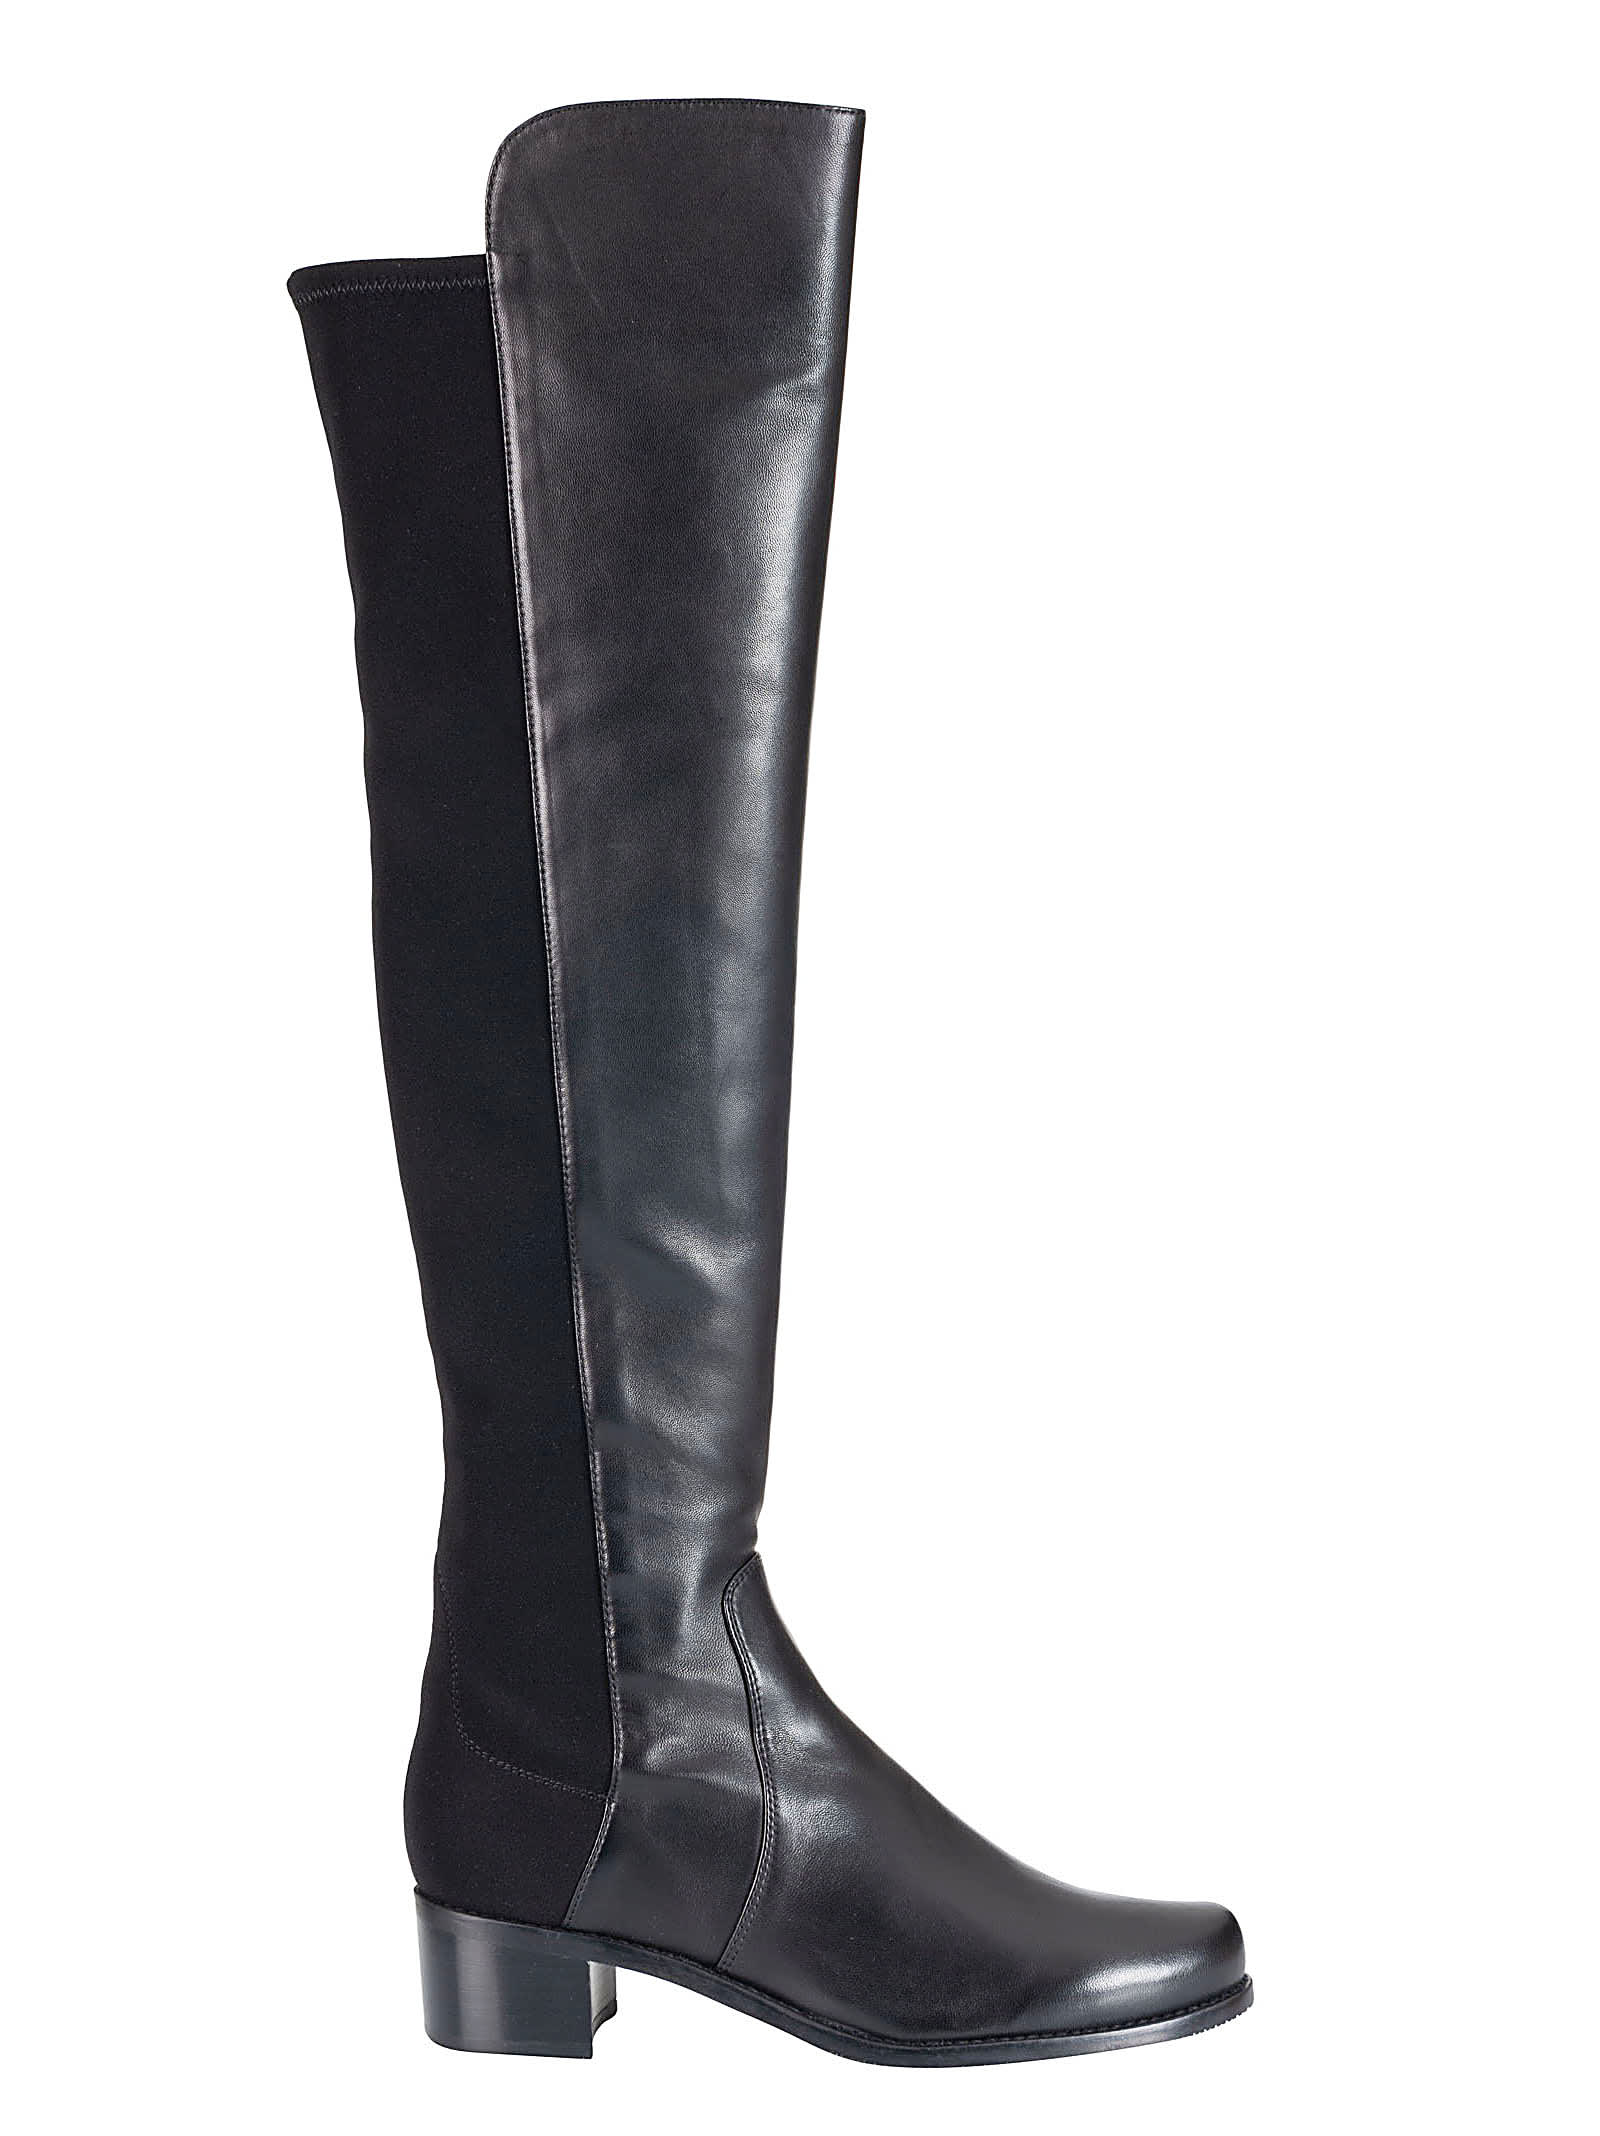 quality products save up to 80% the sale of shoes Stuart Weitzman Reserve Over-The-Knee Boots In Black | ModeSens